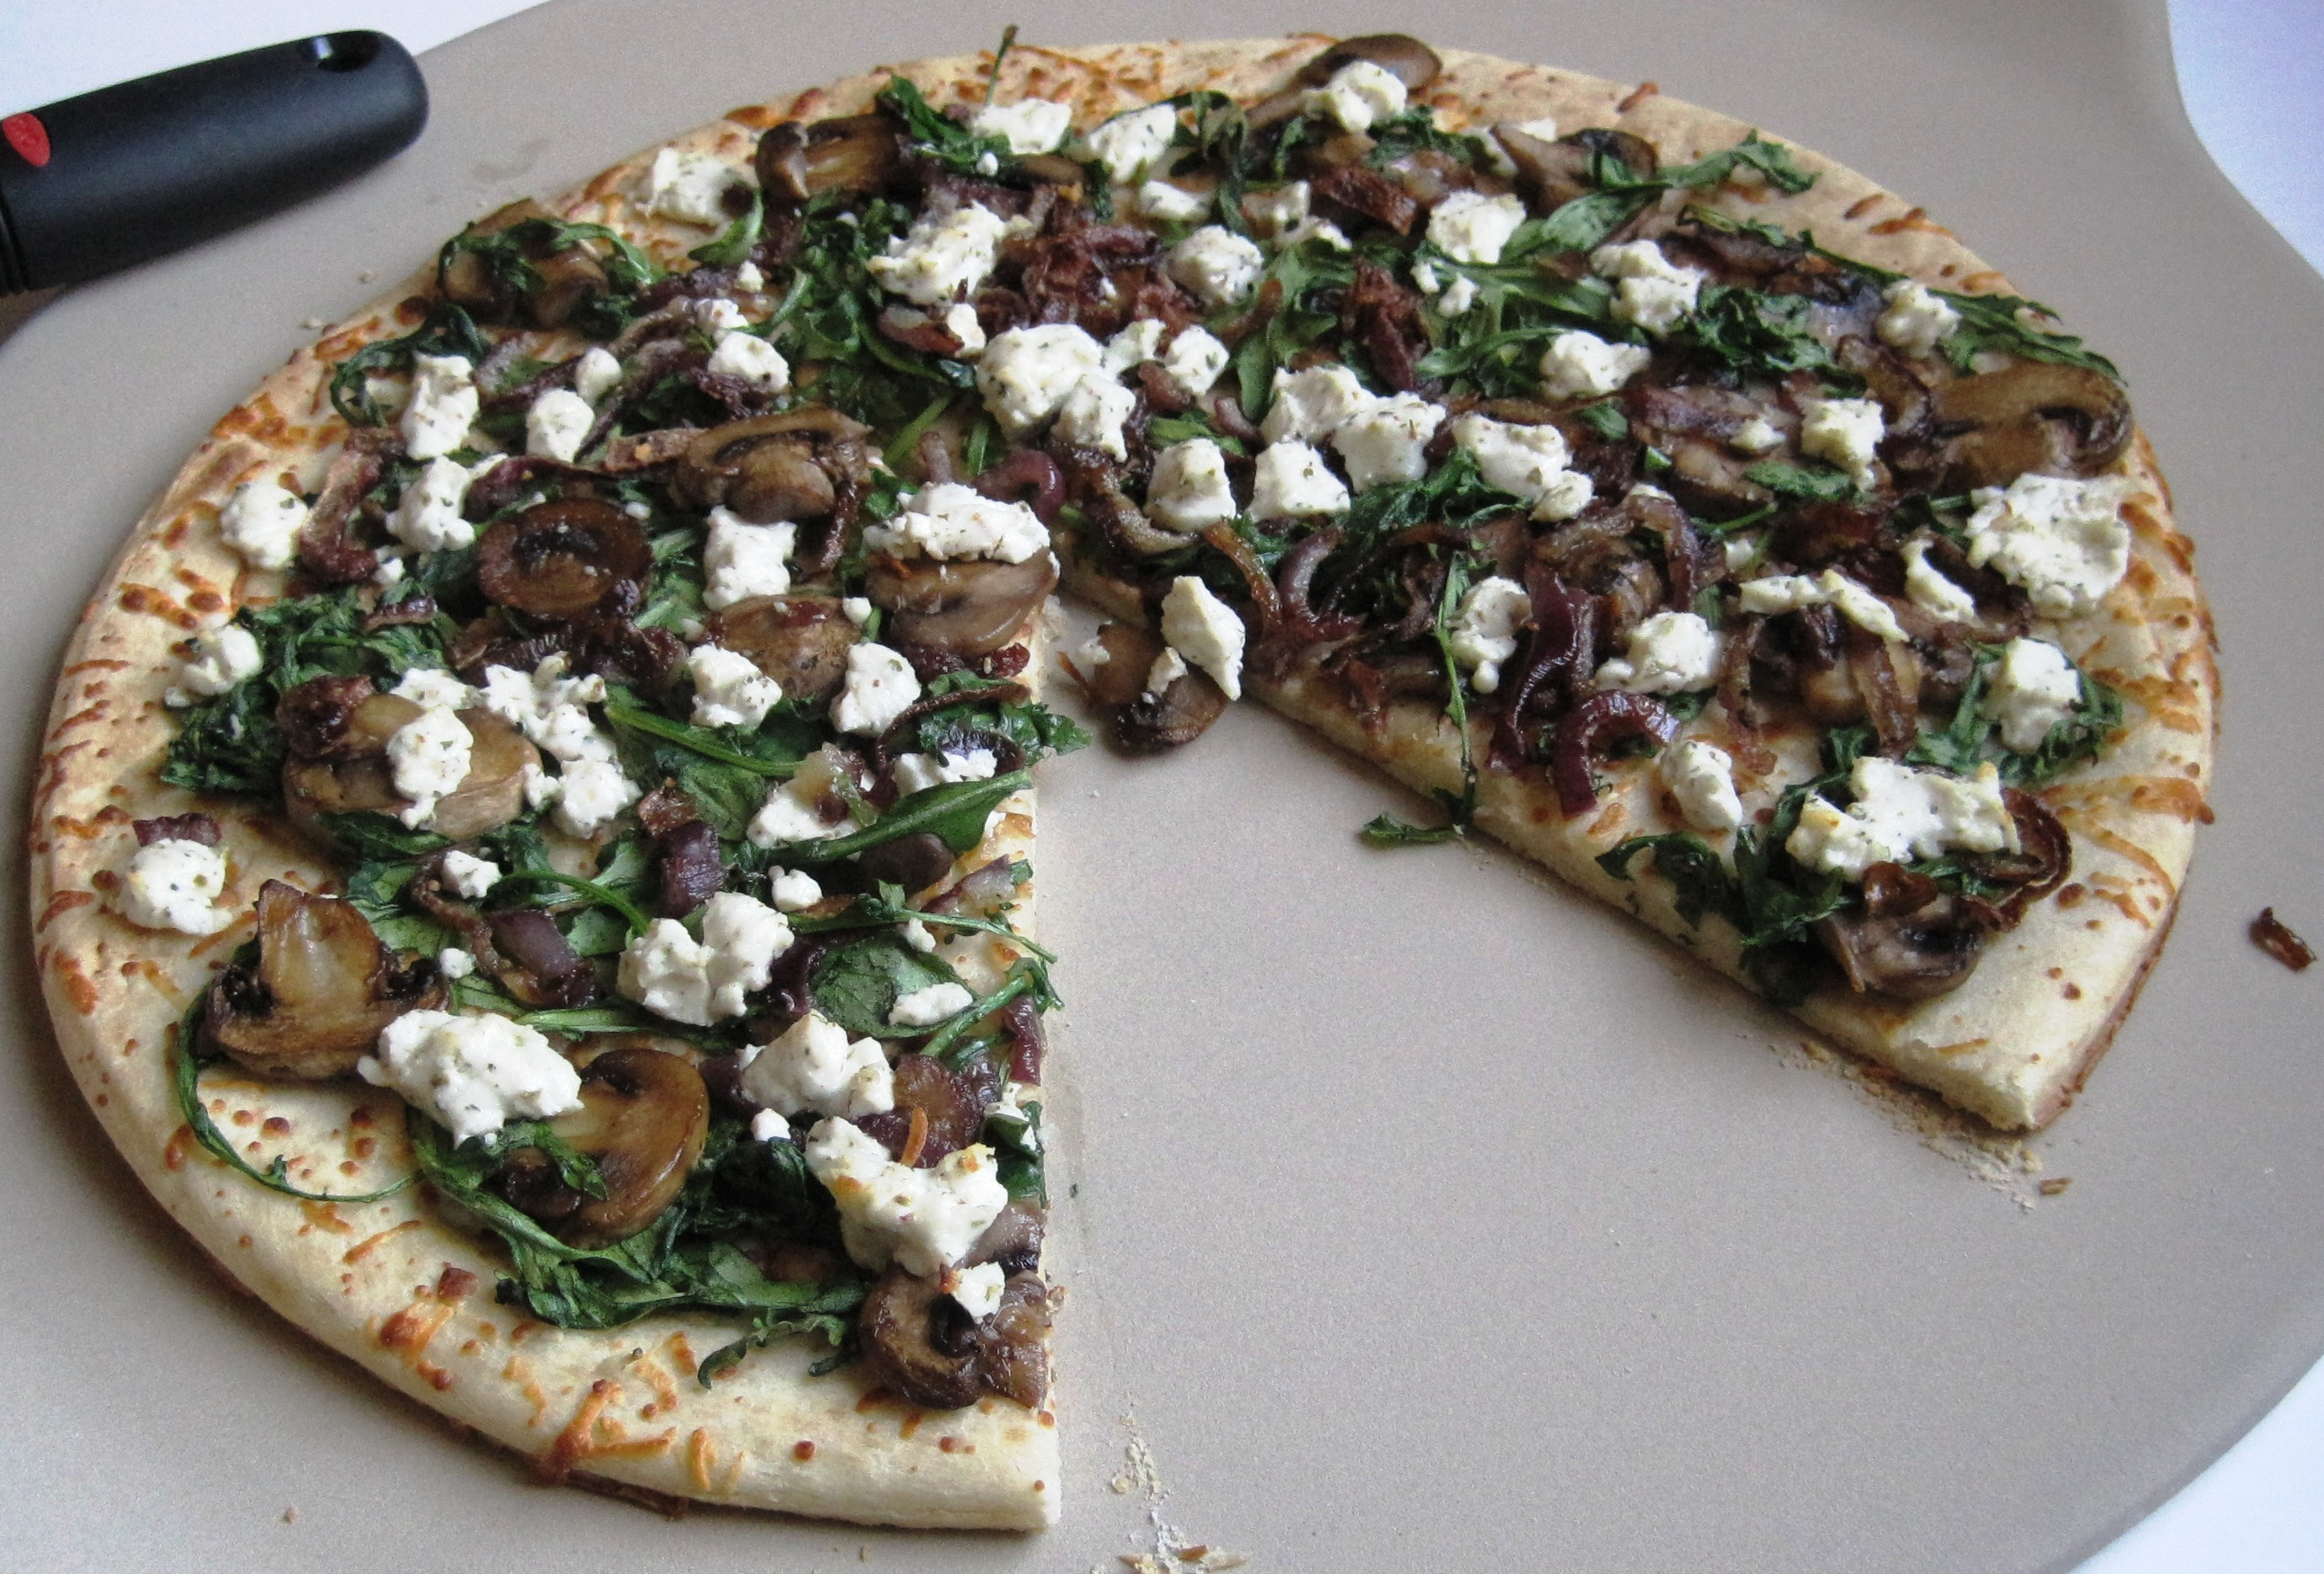 goat-cheese-pizza-piece-missing1.jpg